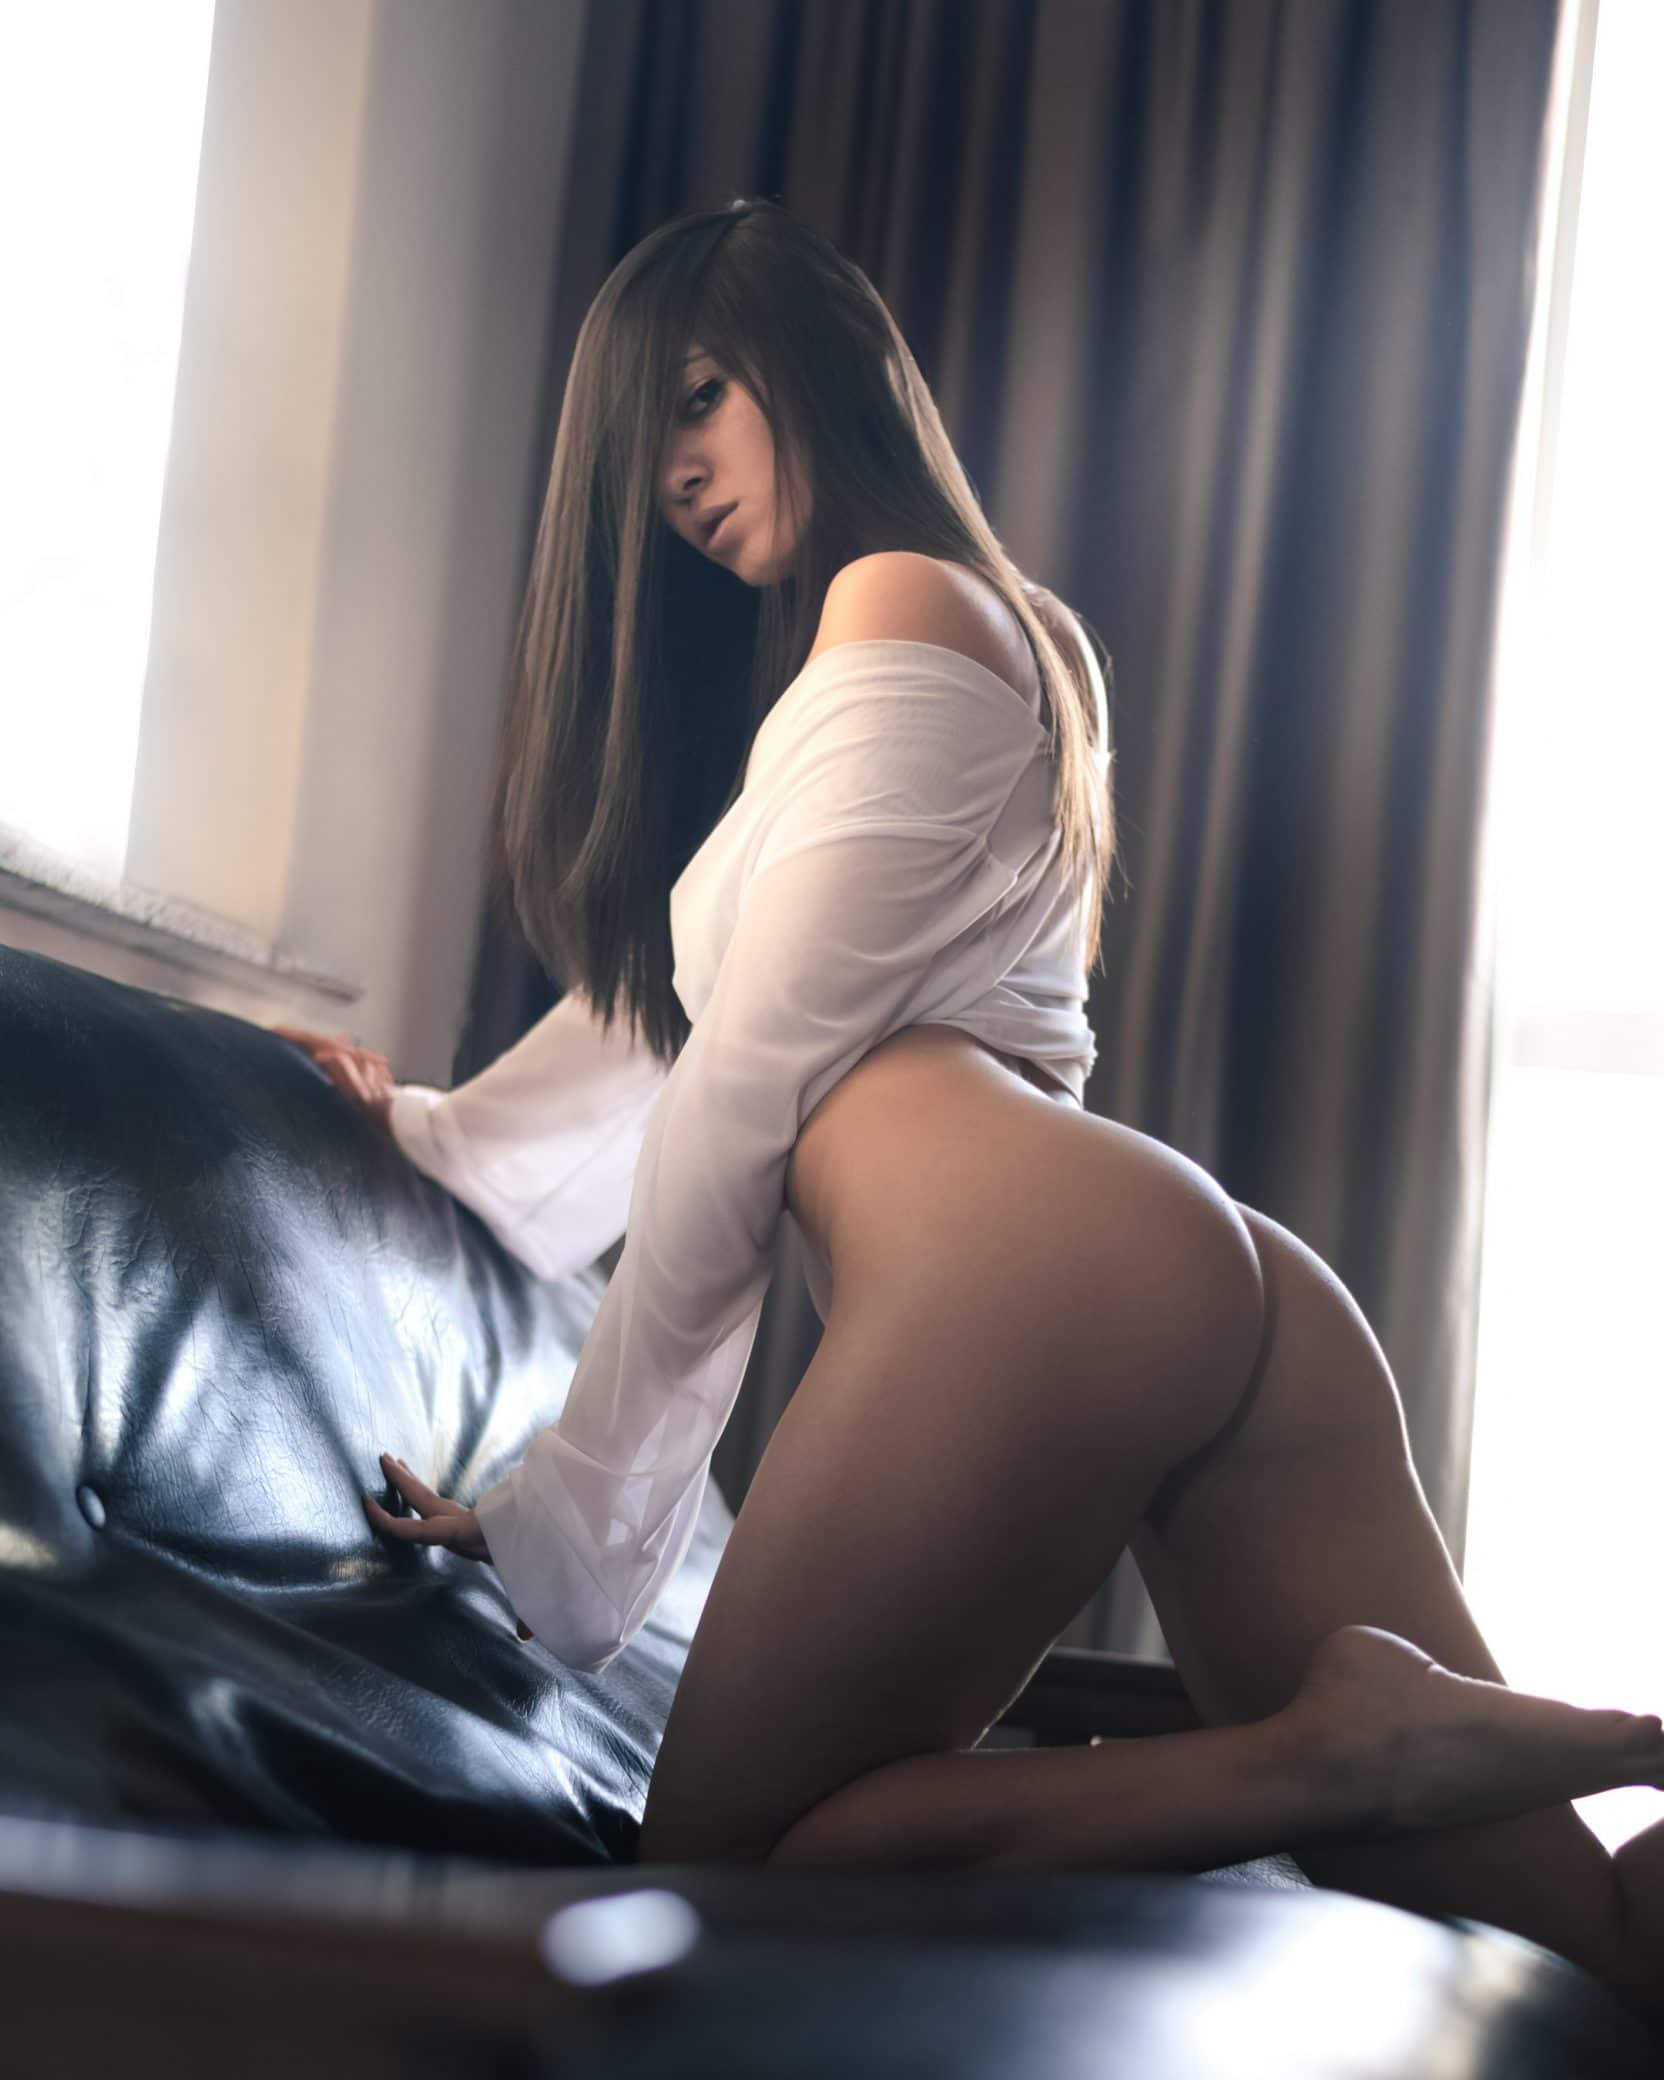 Beautiful Argentine model Micaela Ponce @miki.infinity only wearing a white shirt in a boudoir photoshoot kneeling nude booty showing her sexy legs and bare feet giving a sexy look